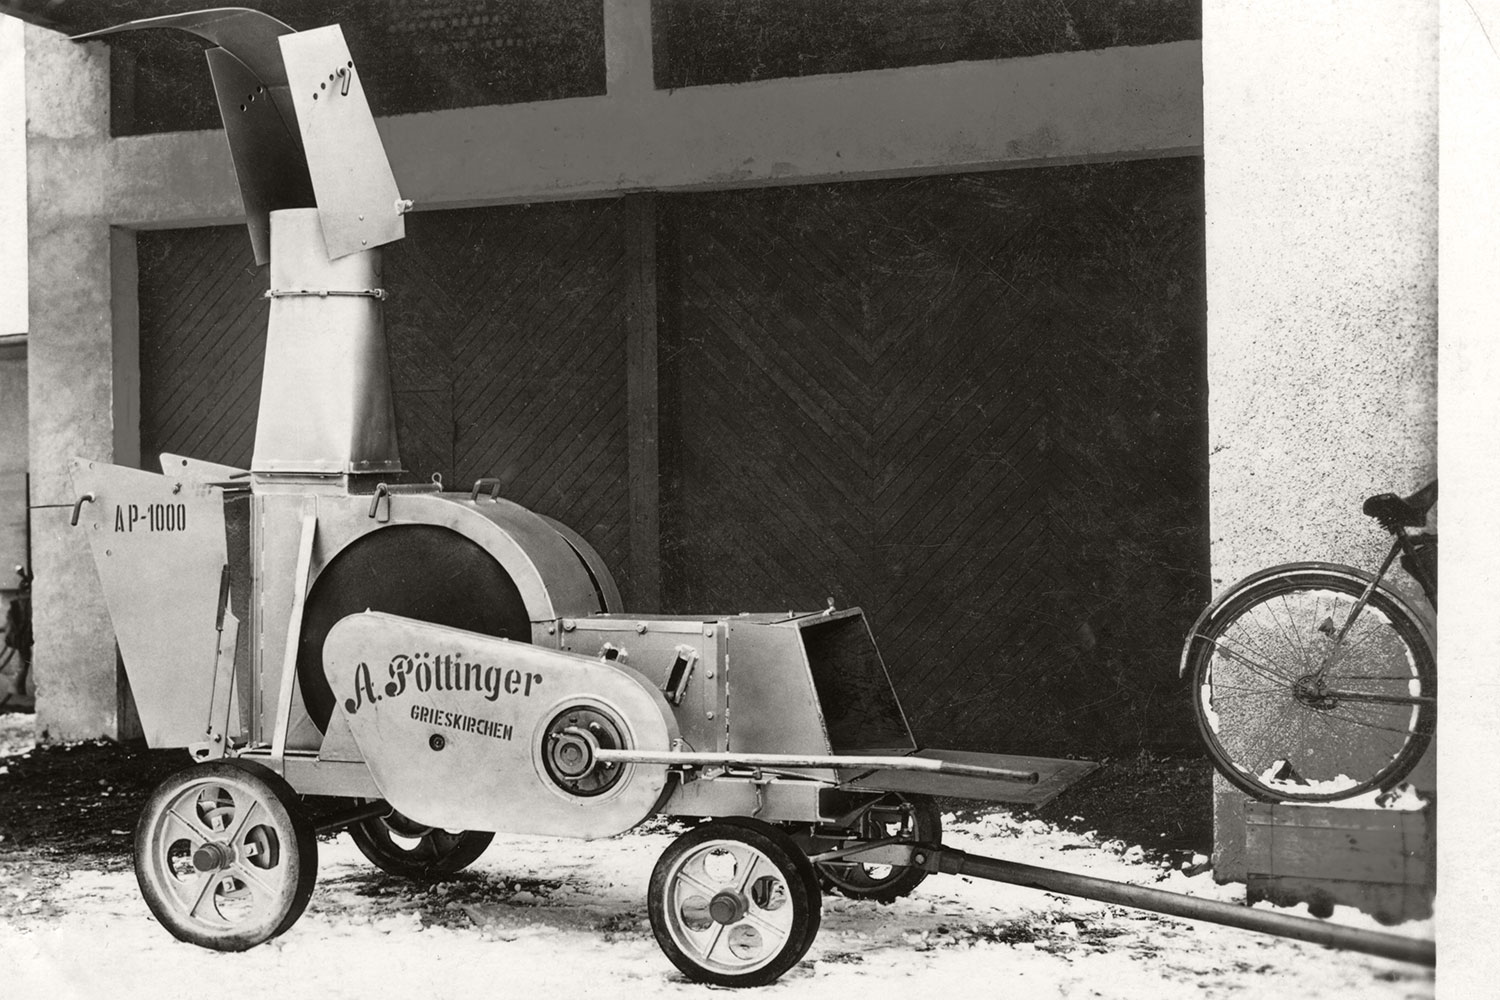 The legendary brushwood chipper that opens up exports to Germany for PÖTTINGER.